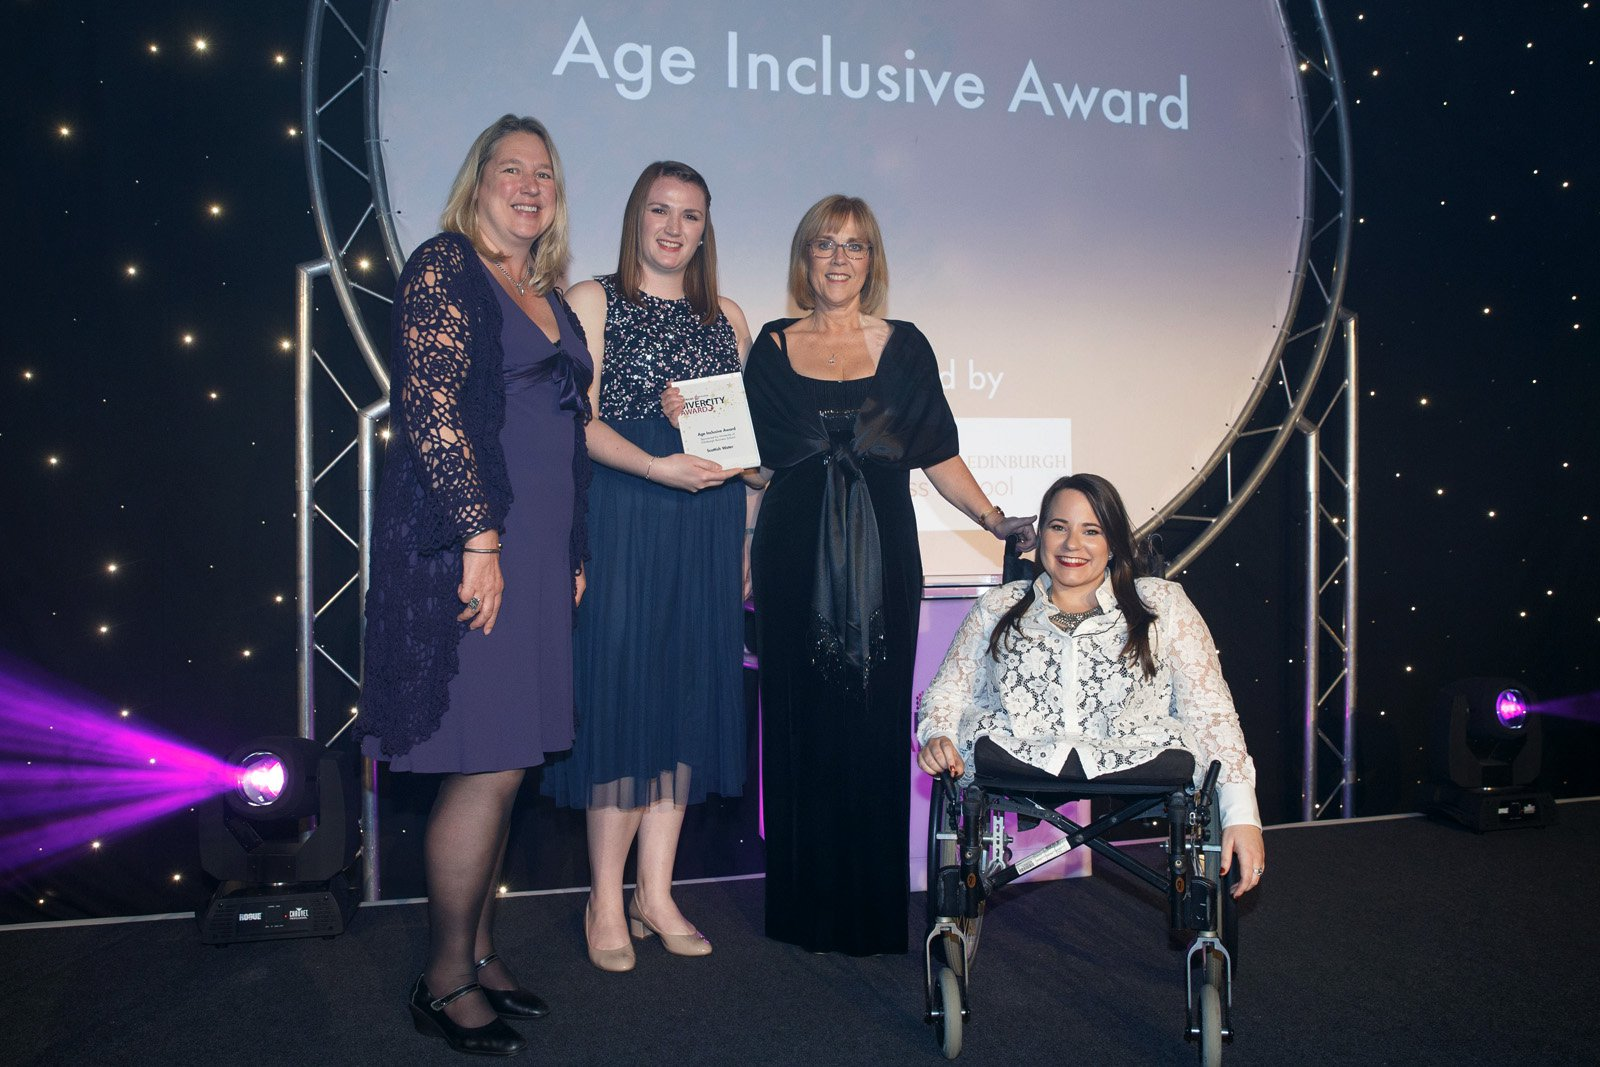 Wendy Loretto and Age Inclusive Award Winners Scottish Water